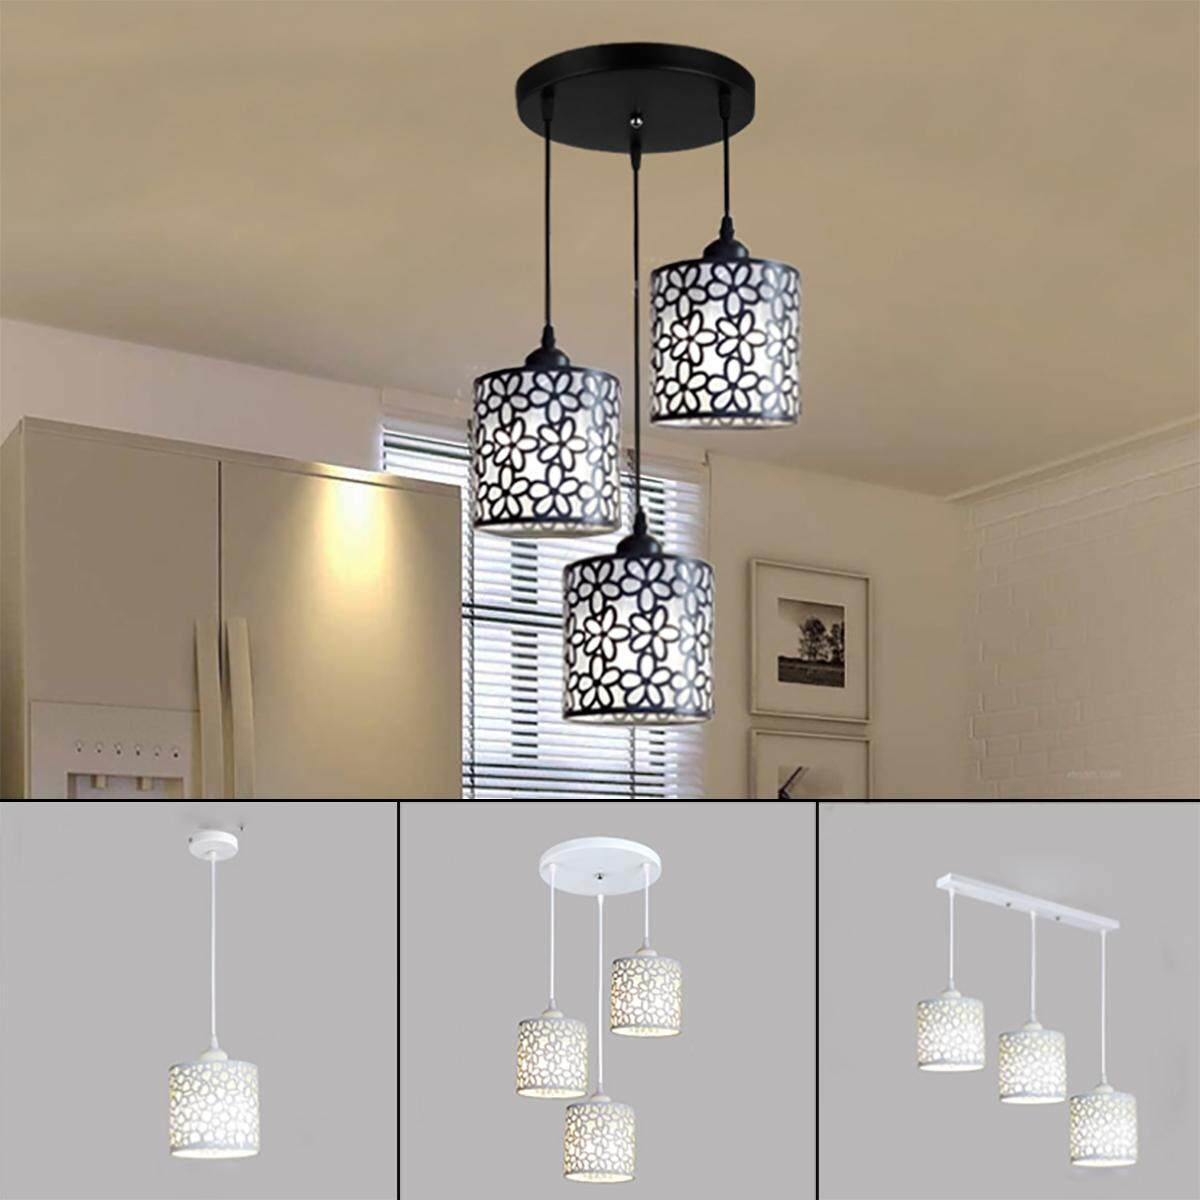 Ceiling Lights Reasonable 18w 24w Crystal Flush Mounted Led Ceiling Lights Modern Round Ceiling Lamp For Living Room Bedroom Dining Room Fixtures